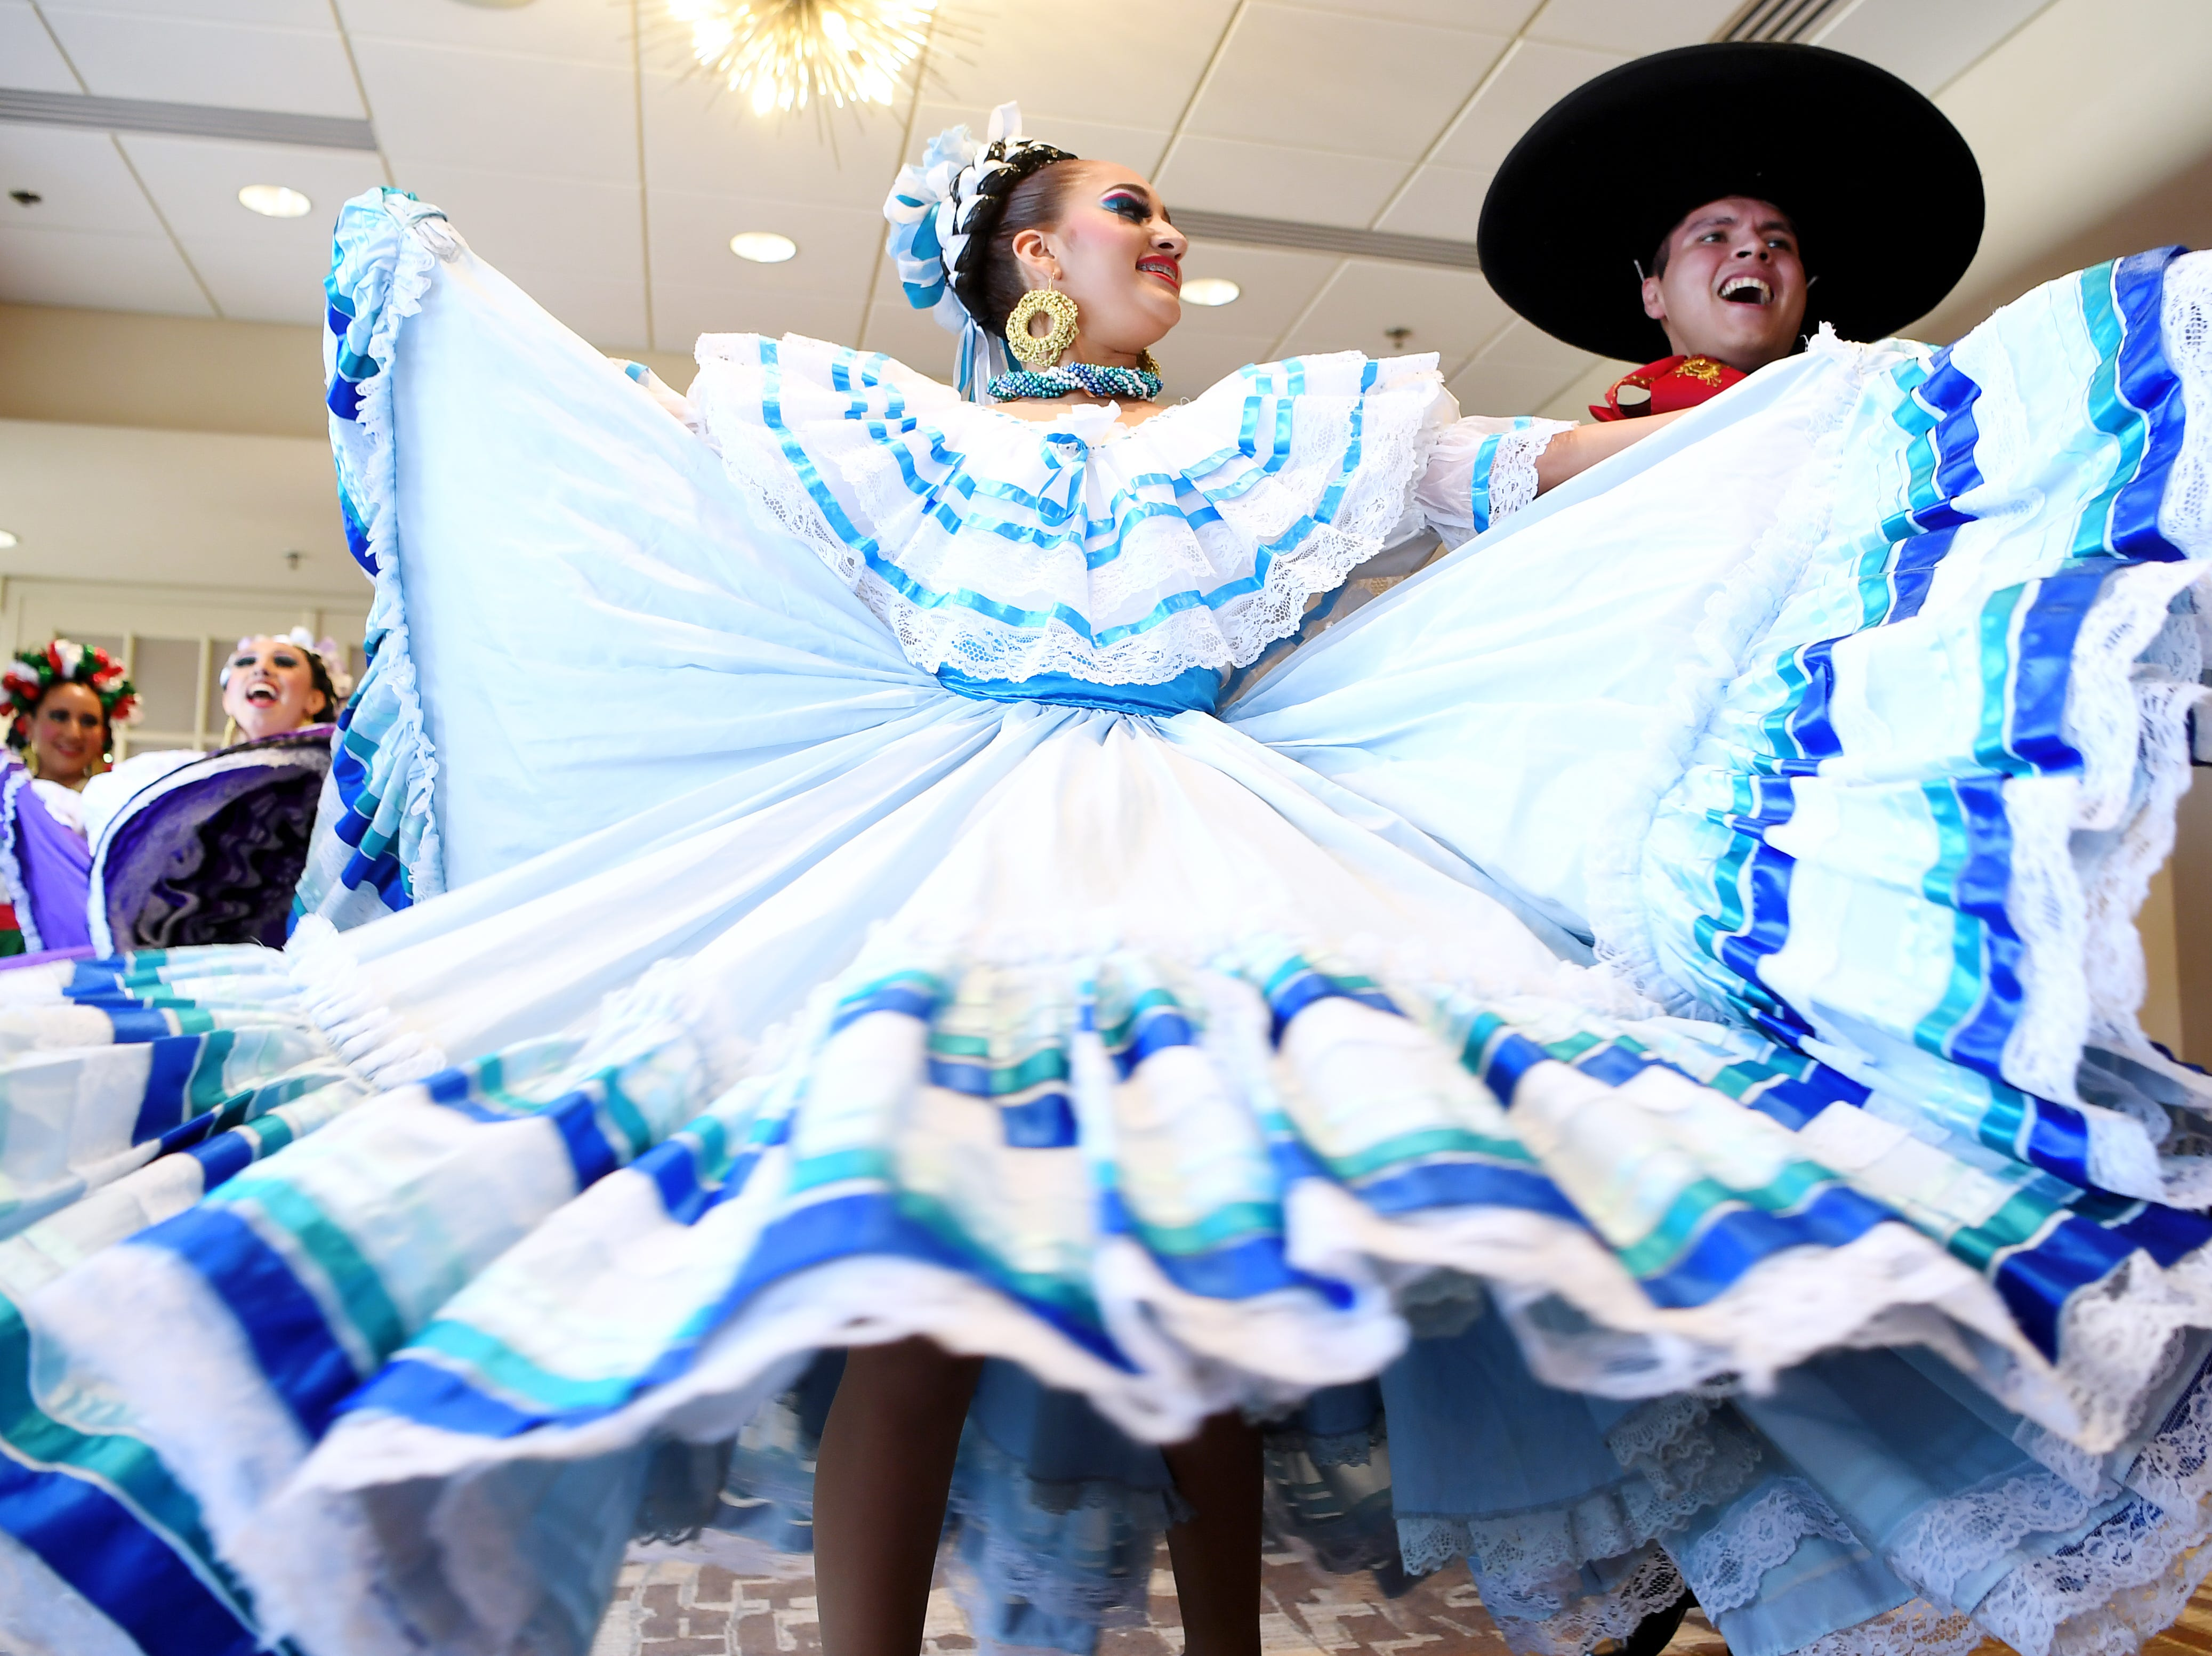 The Fiesta Mexicana Ballet Folklorico performed for the Asheville Rotary Club for a preview of Folkmoot at the Renaissance Hotel July 19, 2018. The Folkmoot Festival is now through July 29.